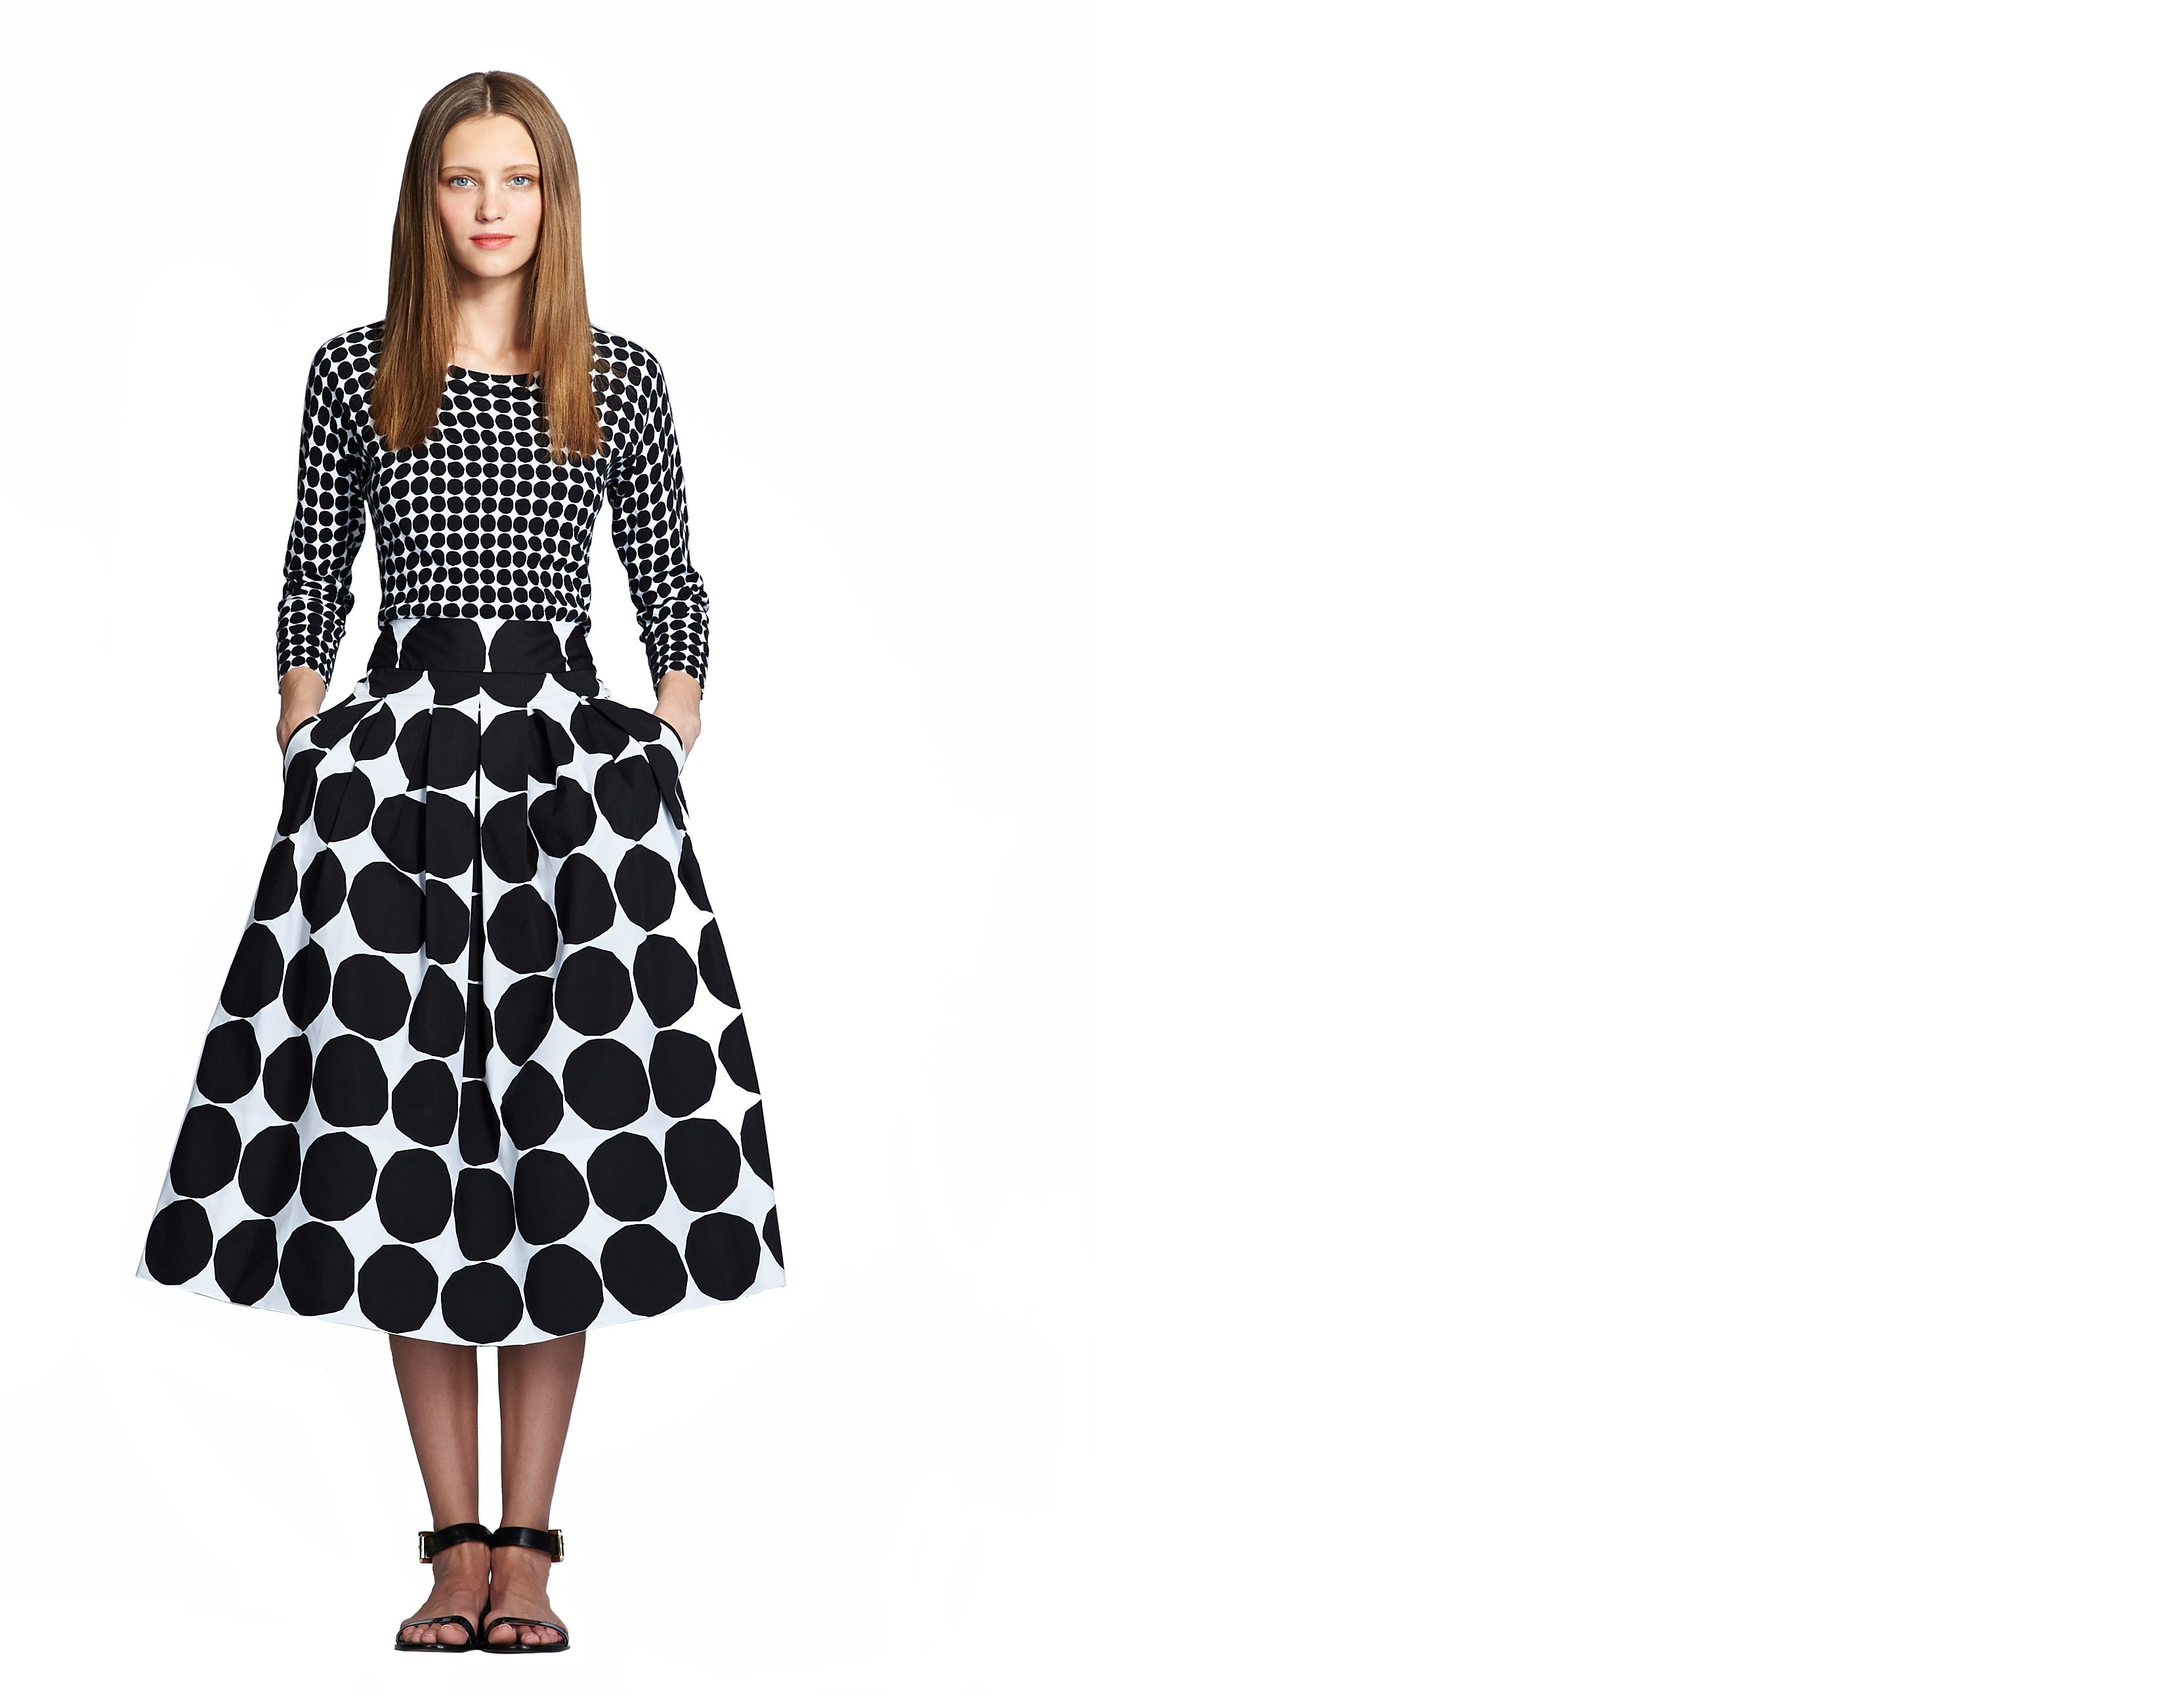 Fashion style Look First at marimekko for banana republic for girls